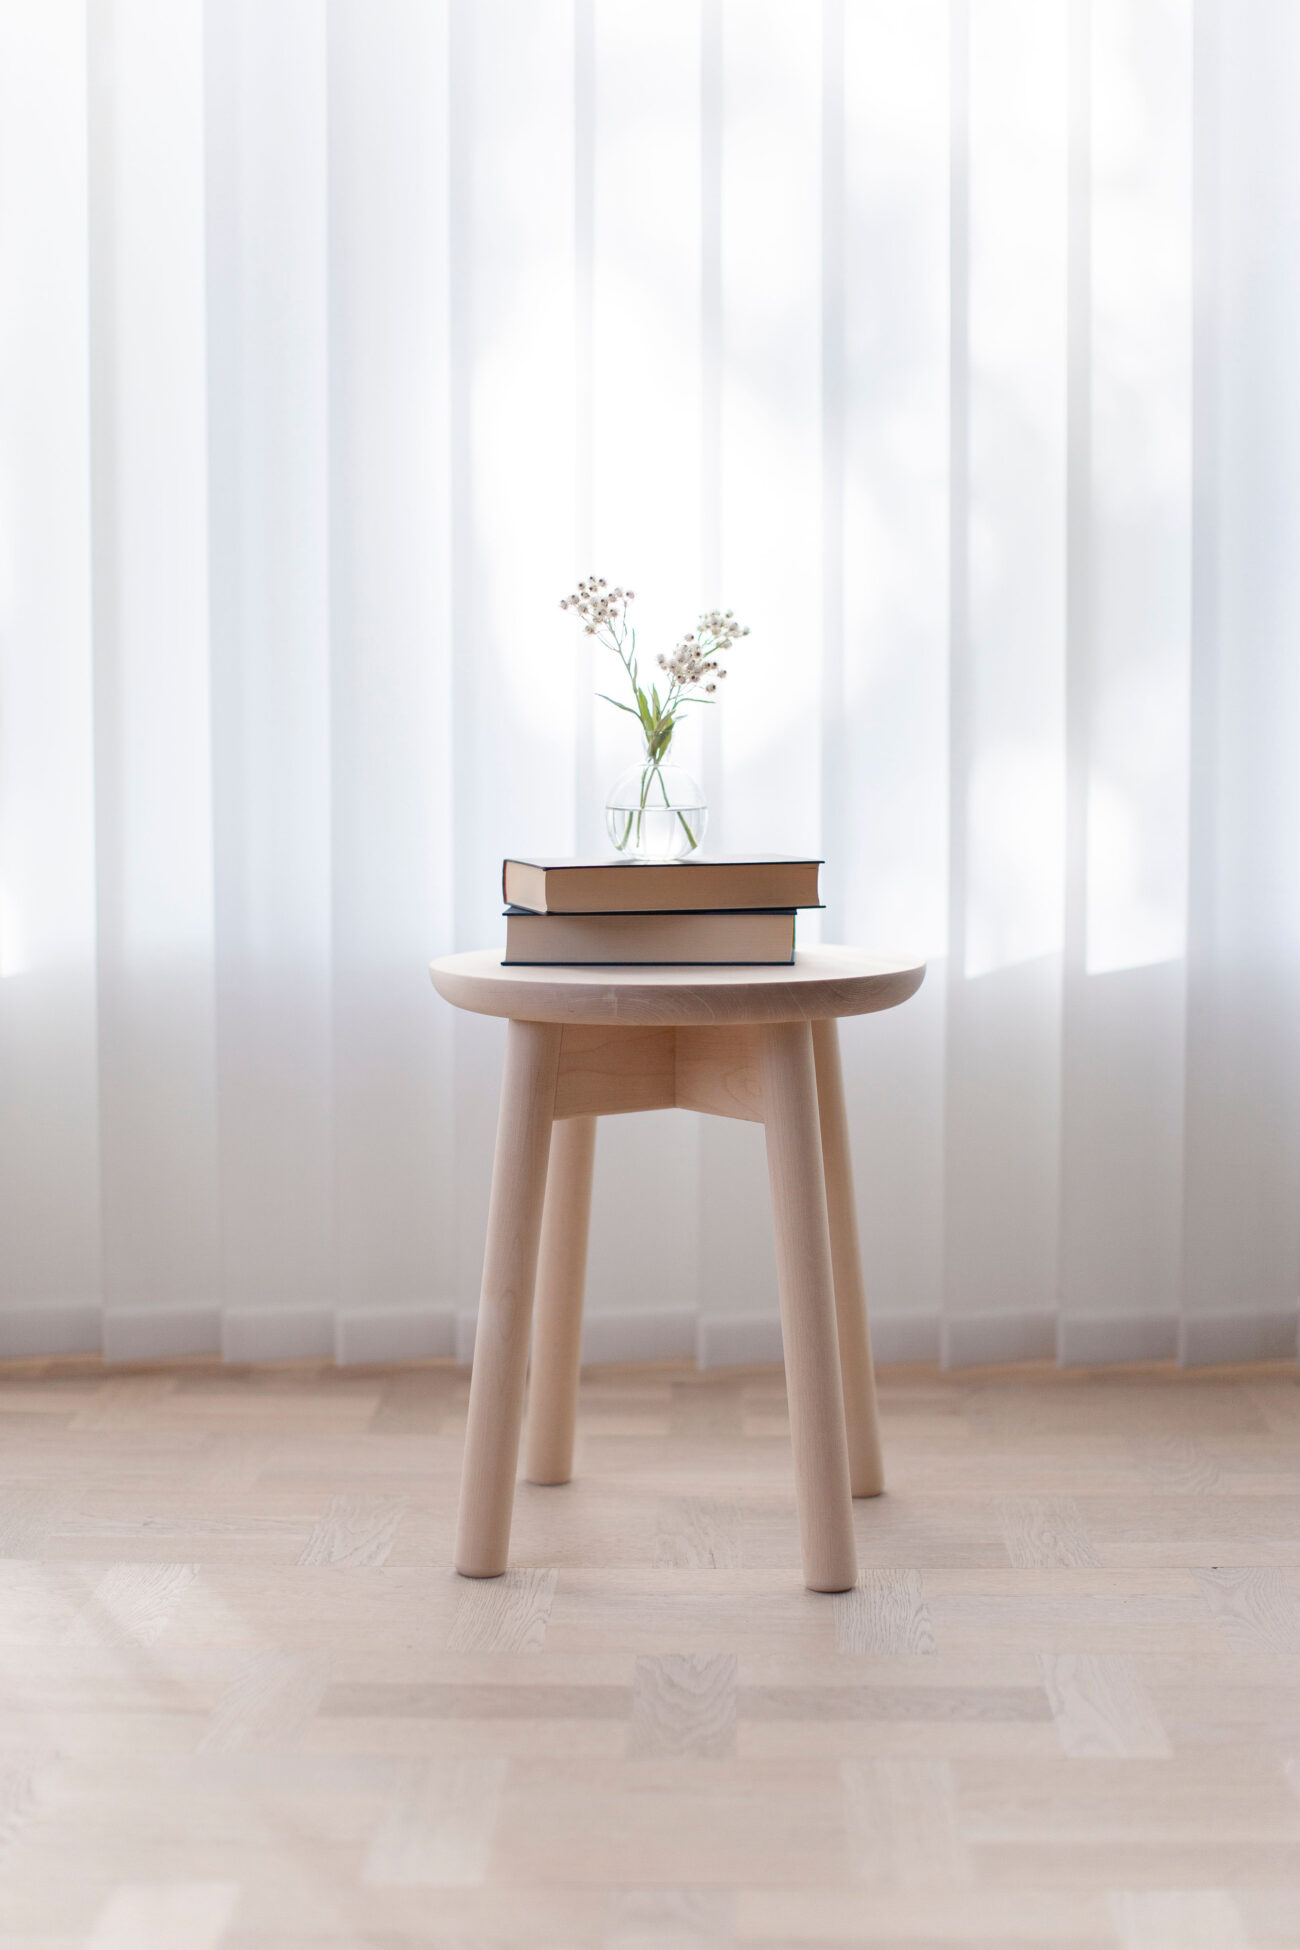 Stool in birch or pine in different colors.